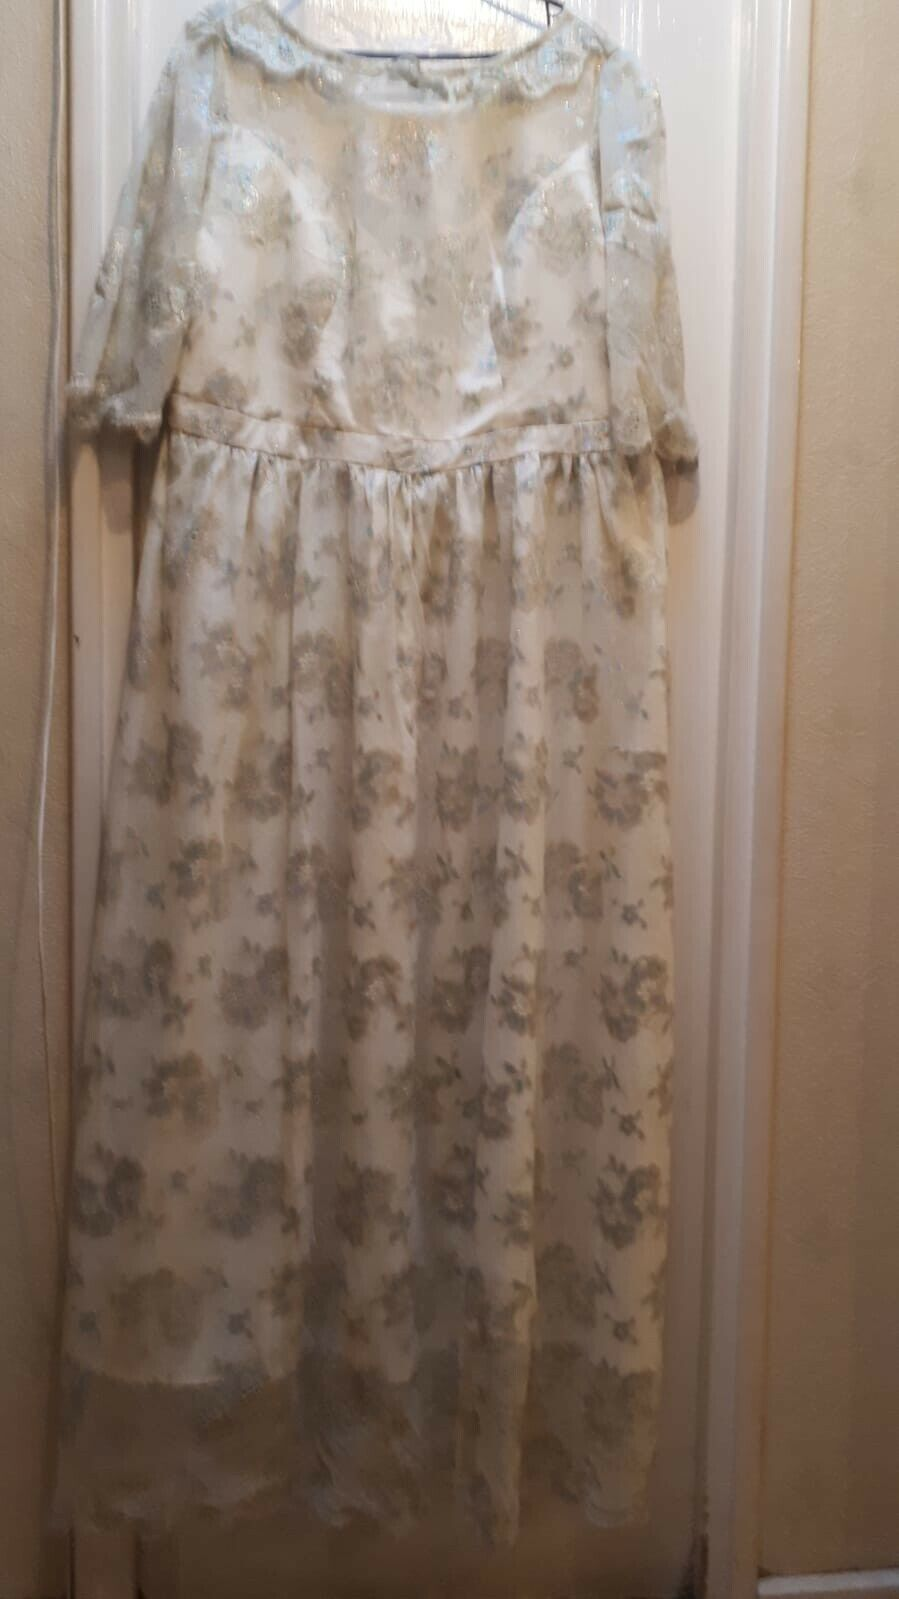 African woman attire. CREAM AND GOLD LACE GOWN. FULLY LINED. UK SIZE 18-20.